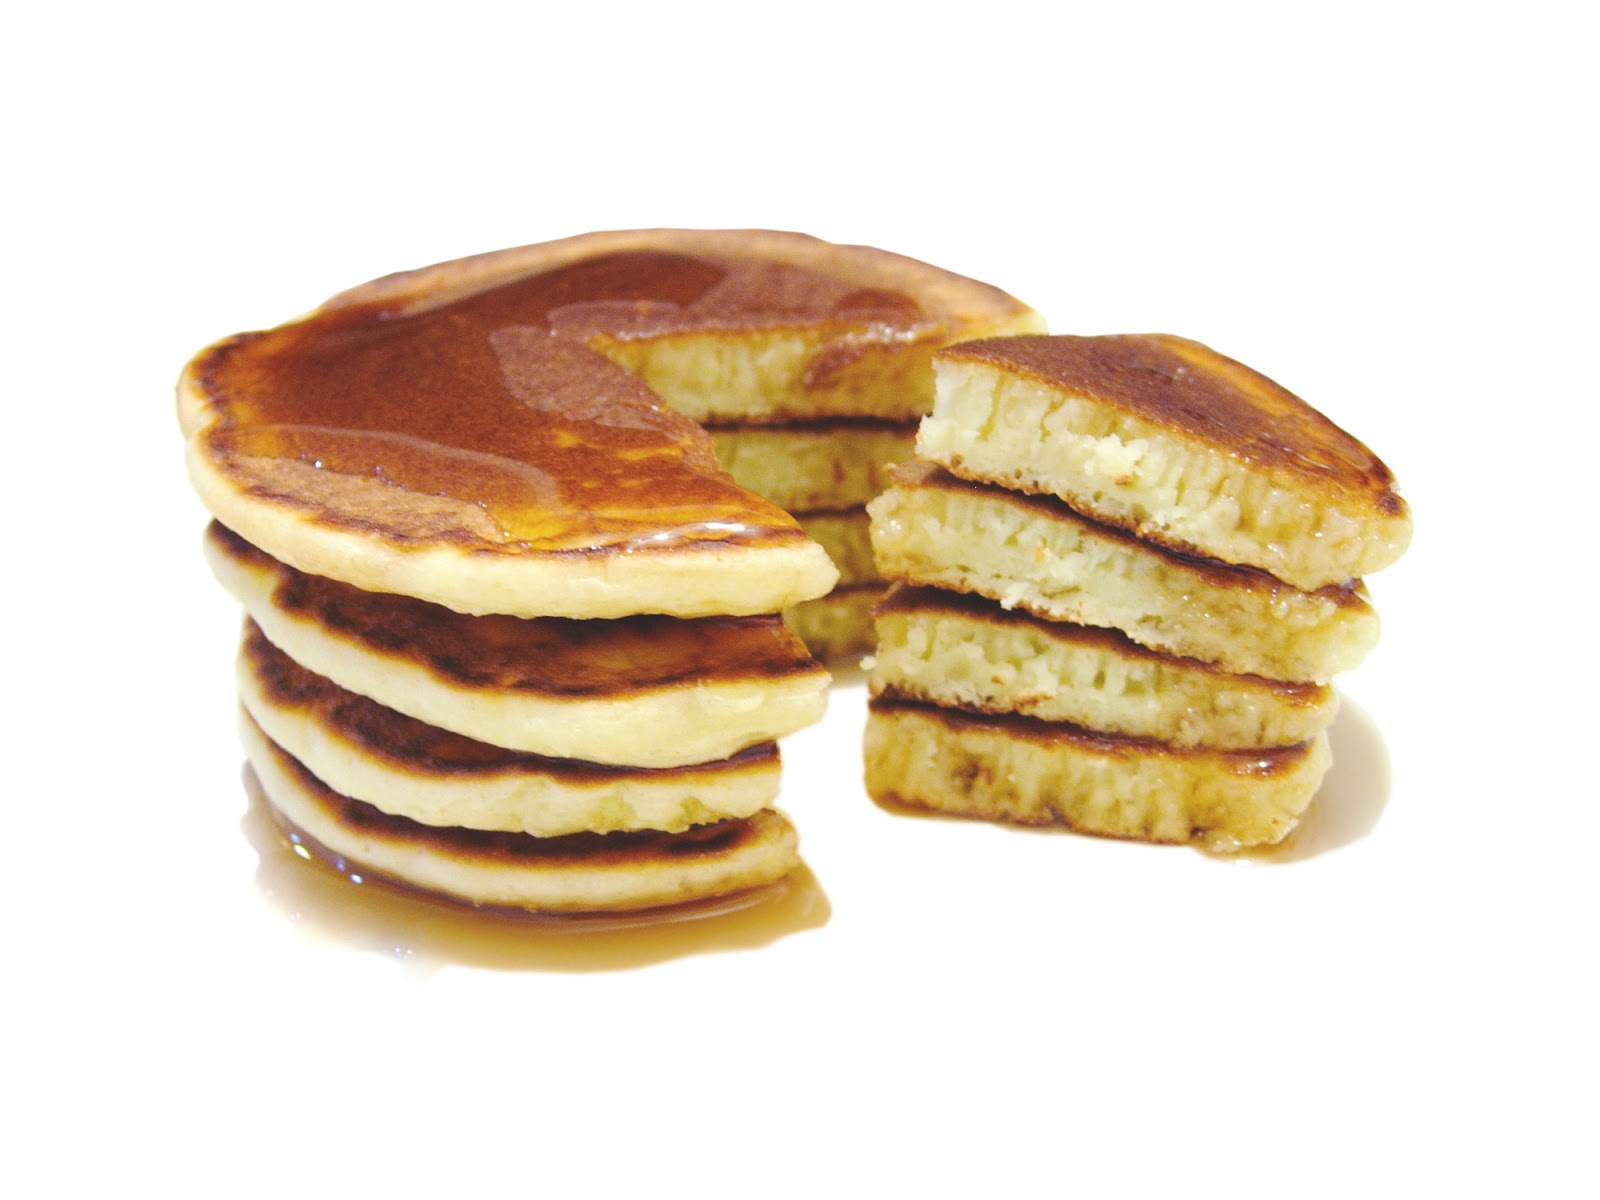 Image Result For Pancakes And